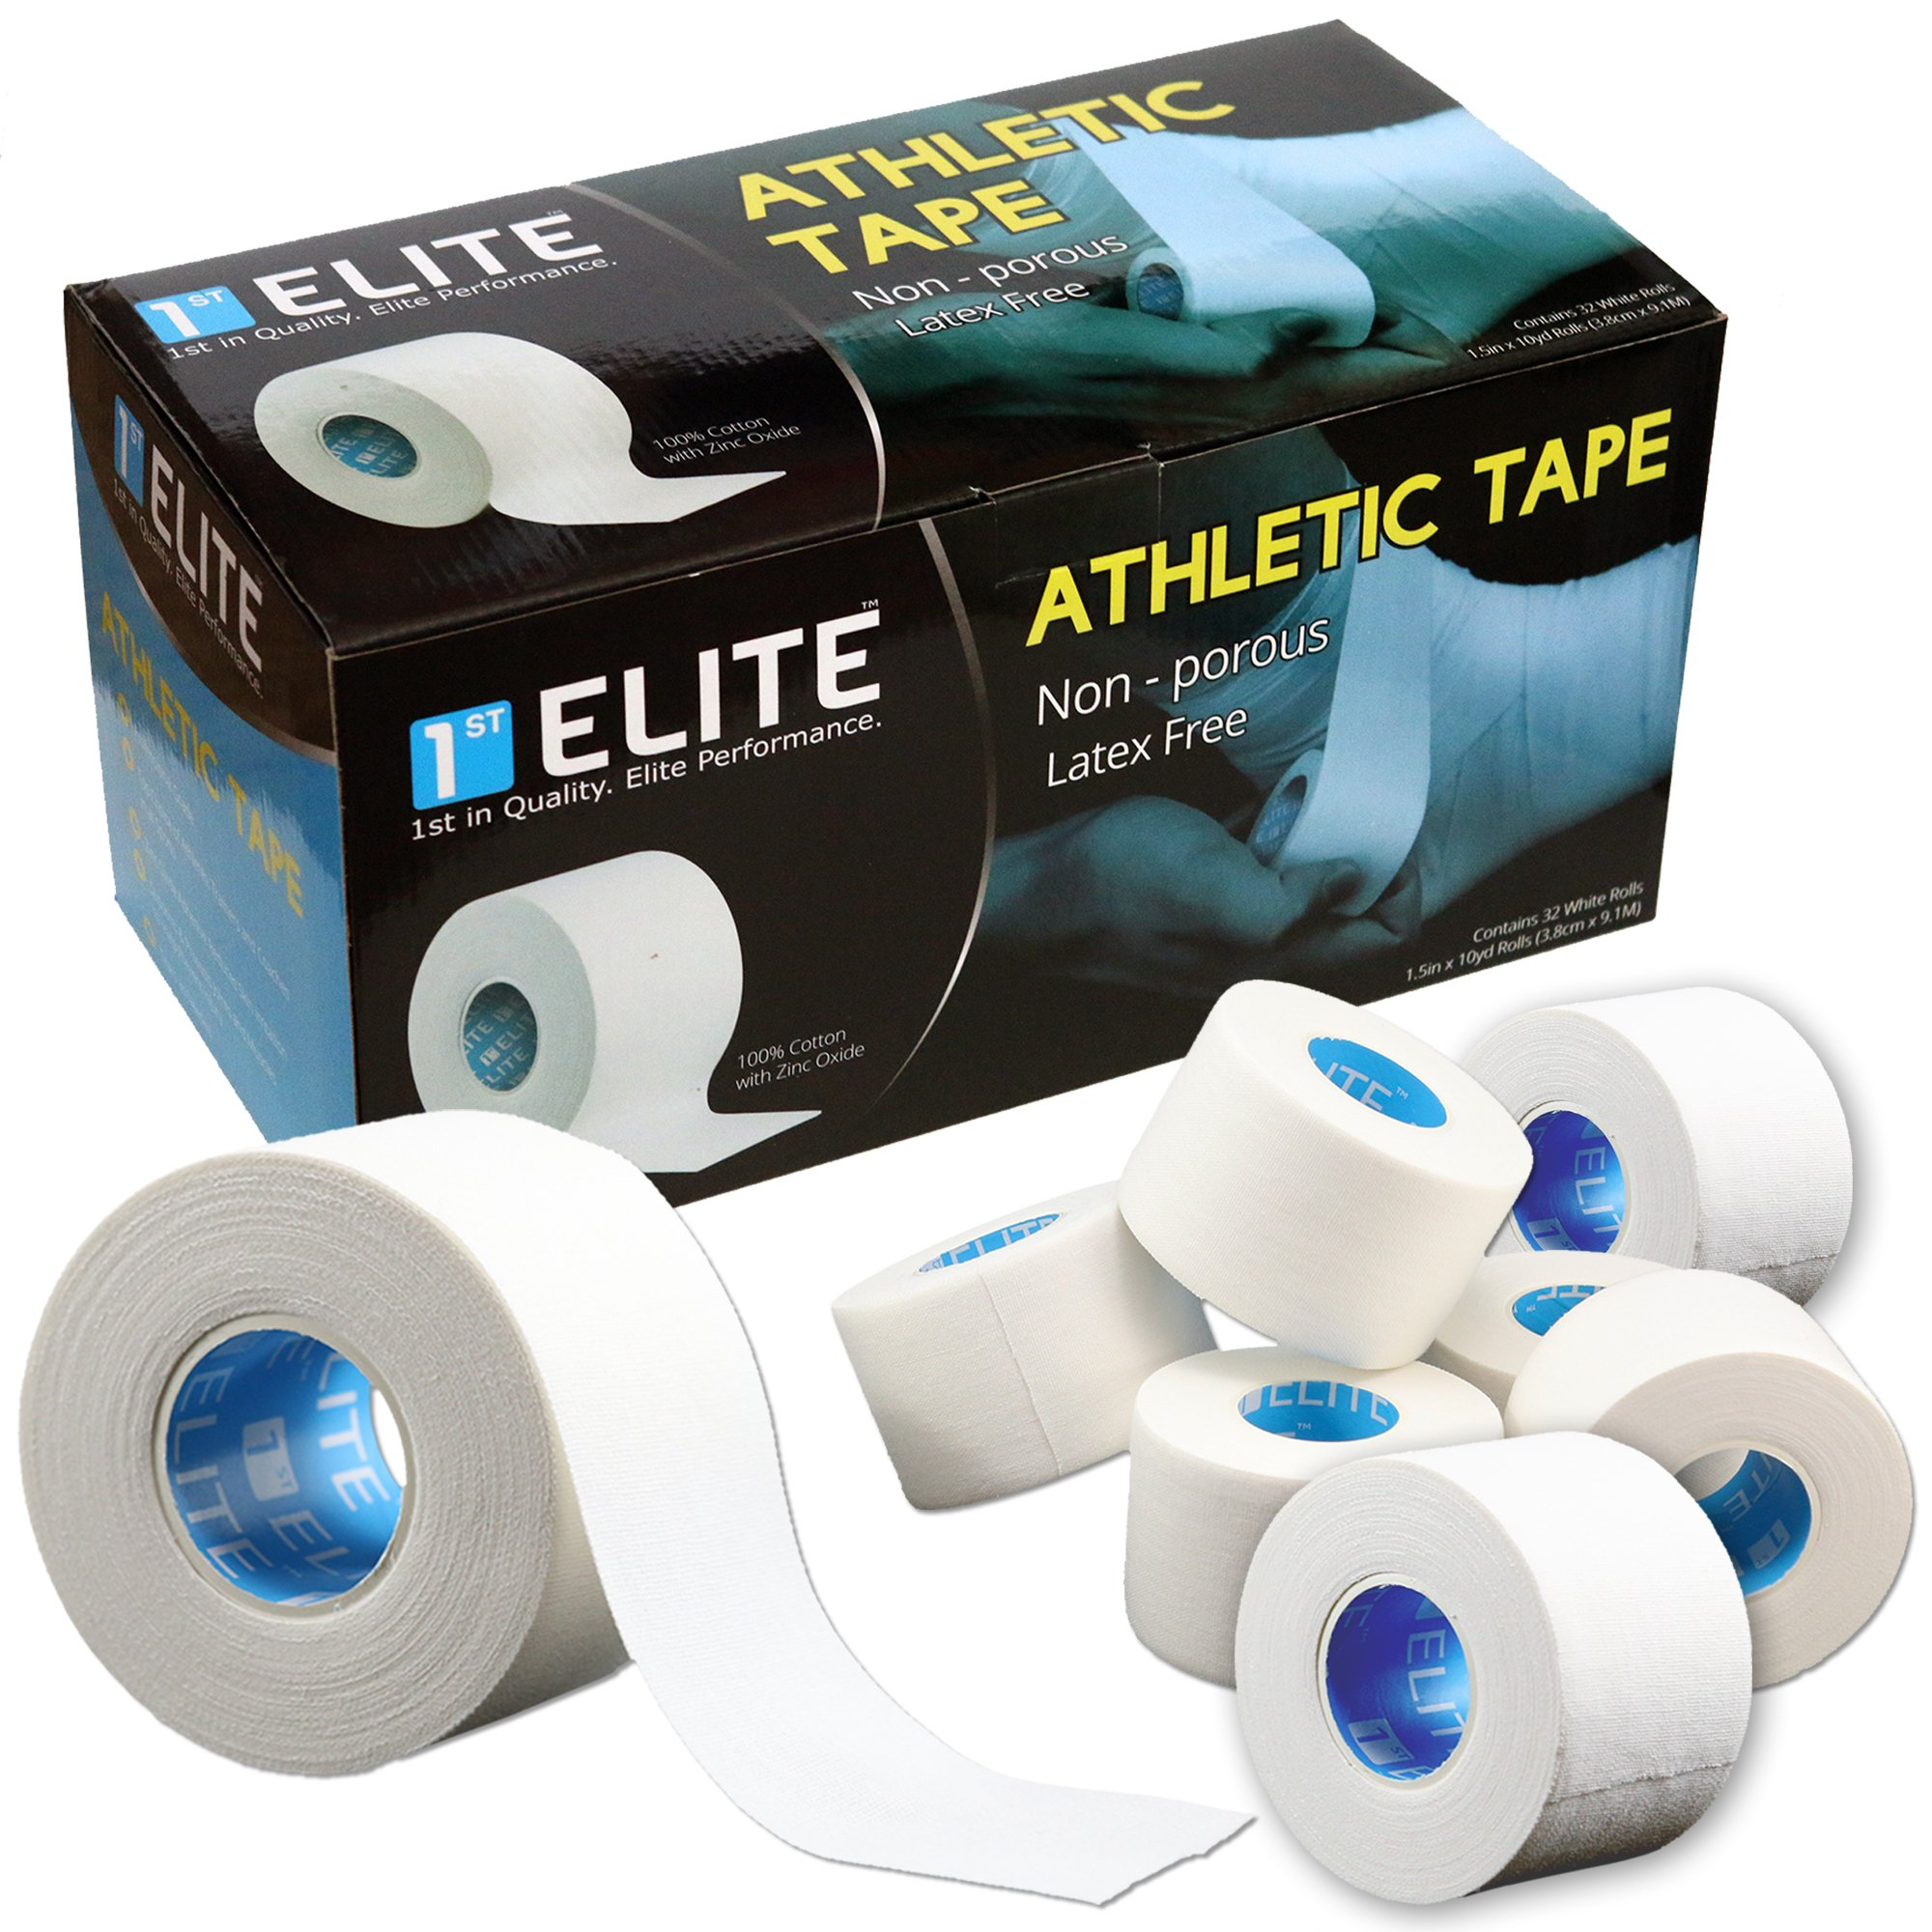 Athletic Tape - Elite Sports & Athletes - Sport Medical Tapes - Climbing Gymnastics Lacrosse Football Soccer Lifting Crossfit